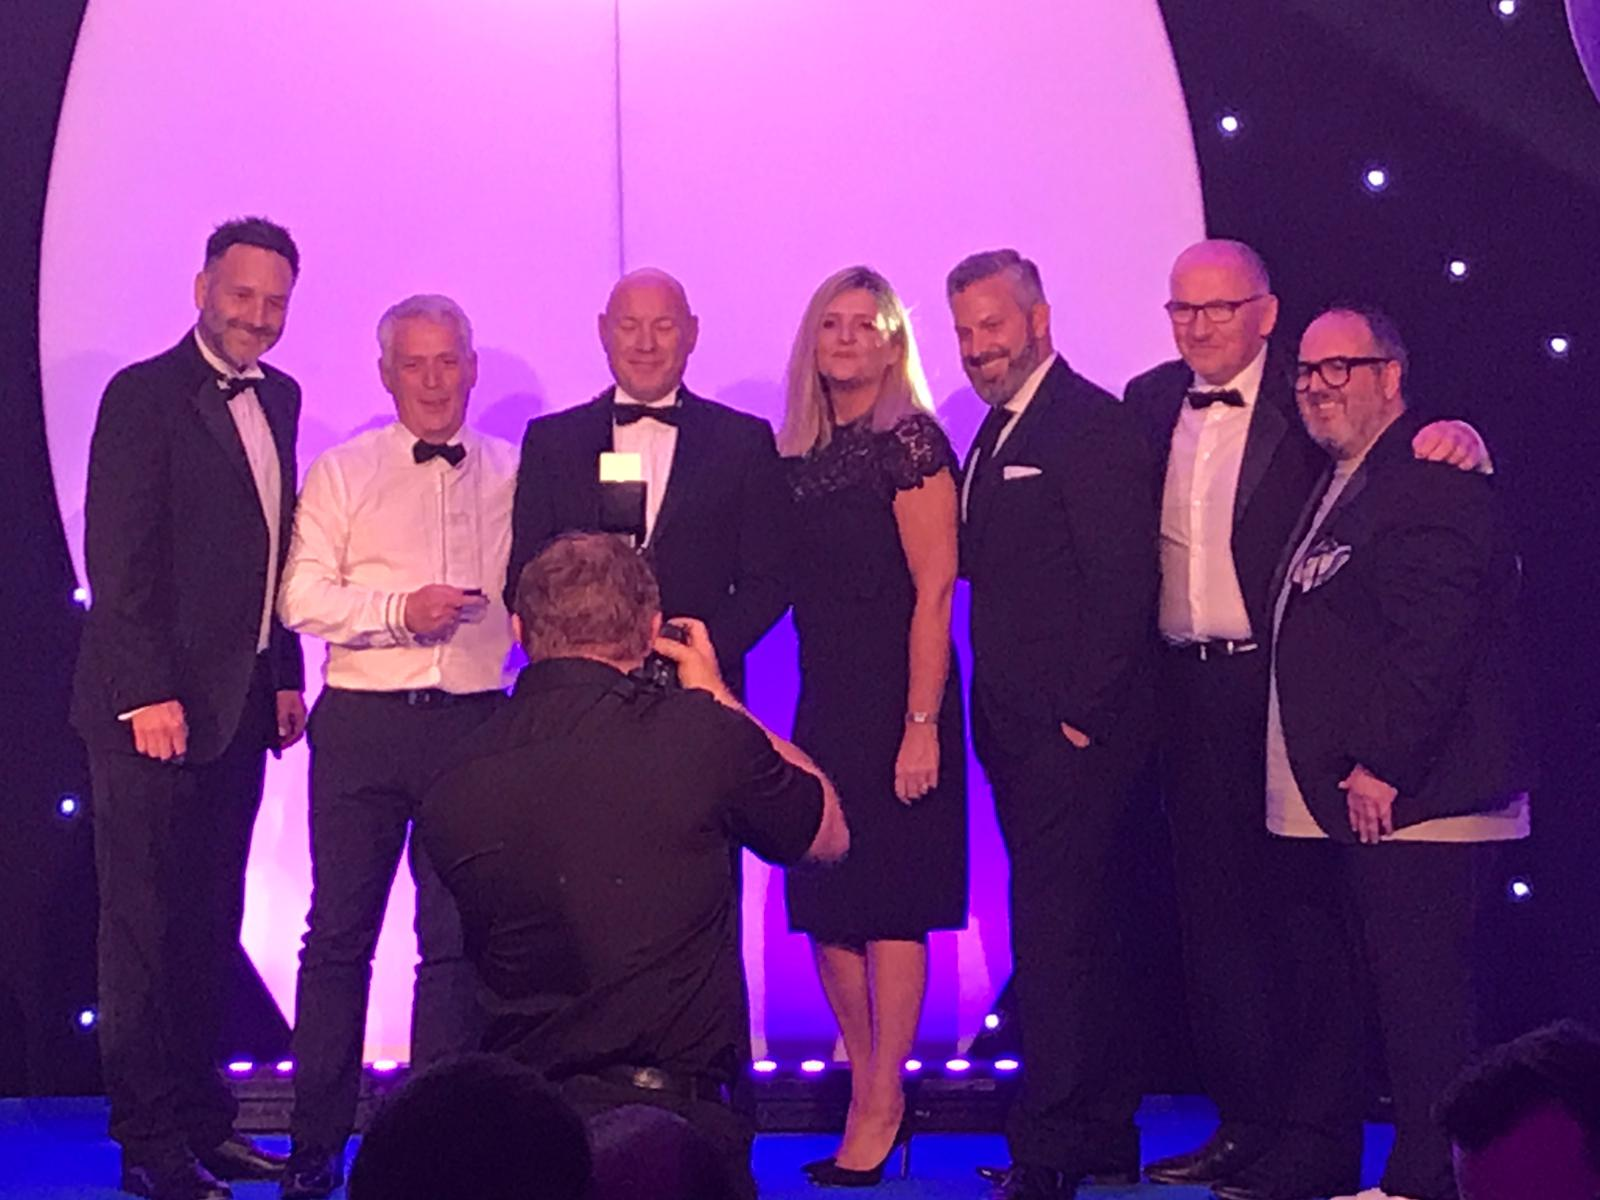 STAR REFRIGERATION WINS PARTNERSHIP AWARD WITH ASDA AND CITY FM AND IS NAMED REFRIGERATION CONTRACTOR OF THE YEAR AT THE TCS&D AWARDS 2021